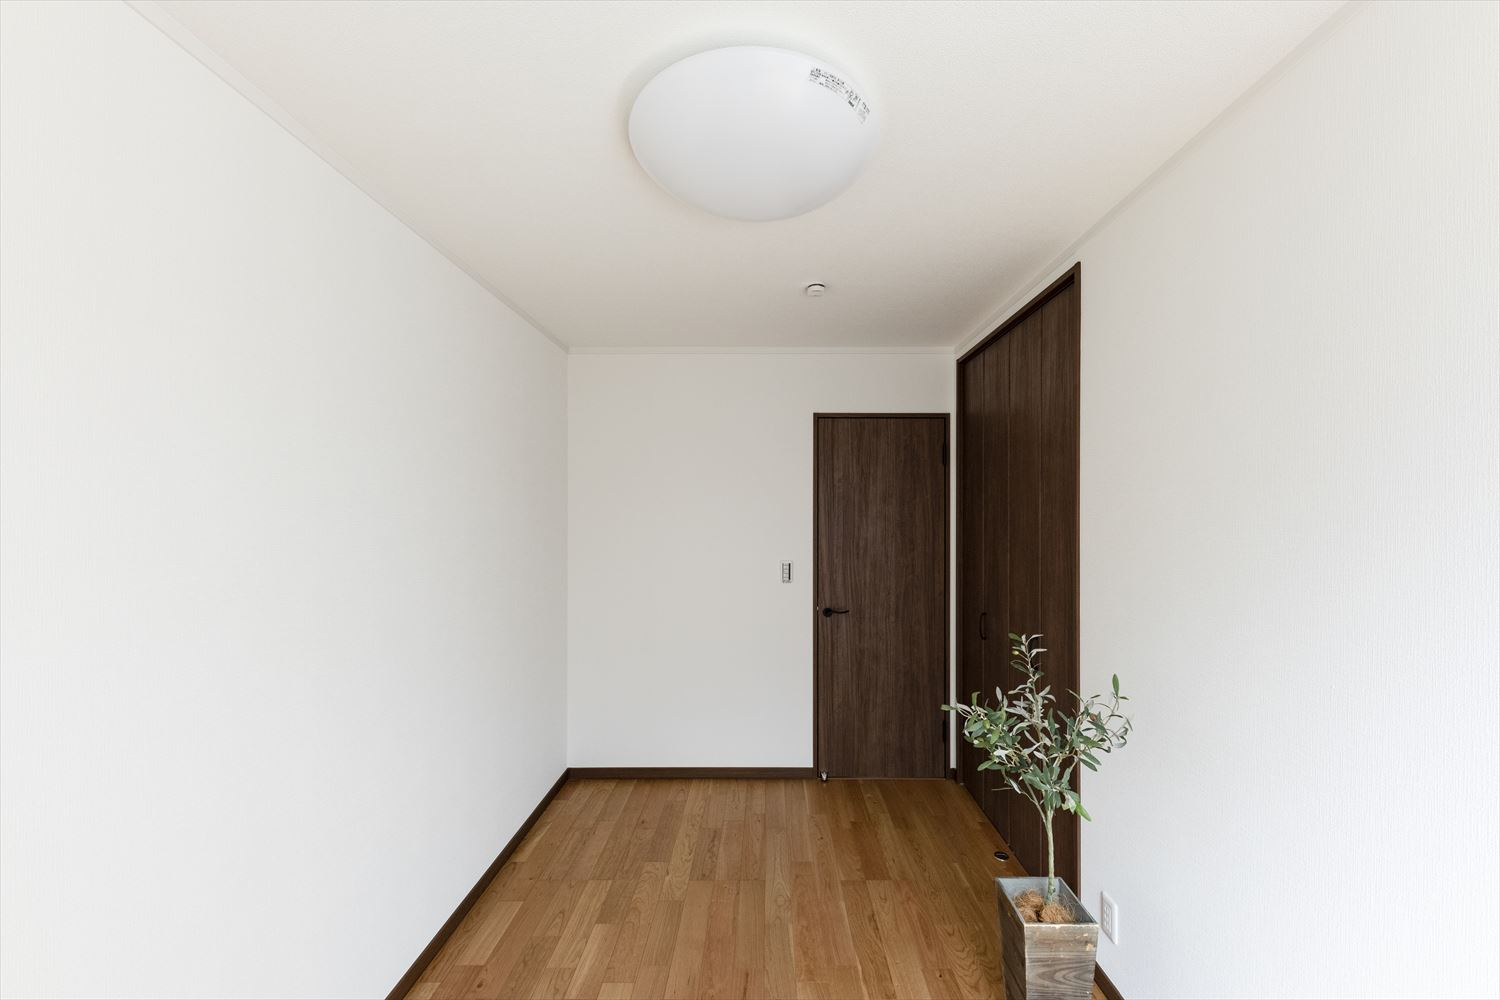 Simple is the best! 使い勝手と心地の良い、落ち着いた住空間に